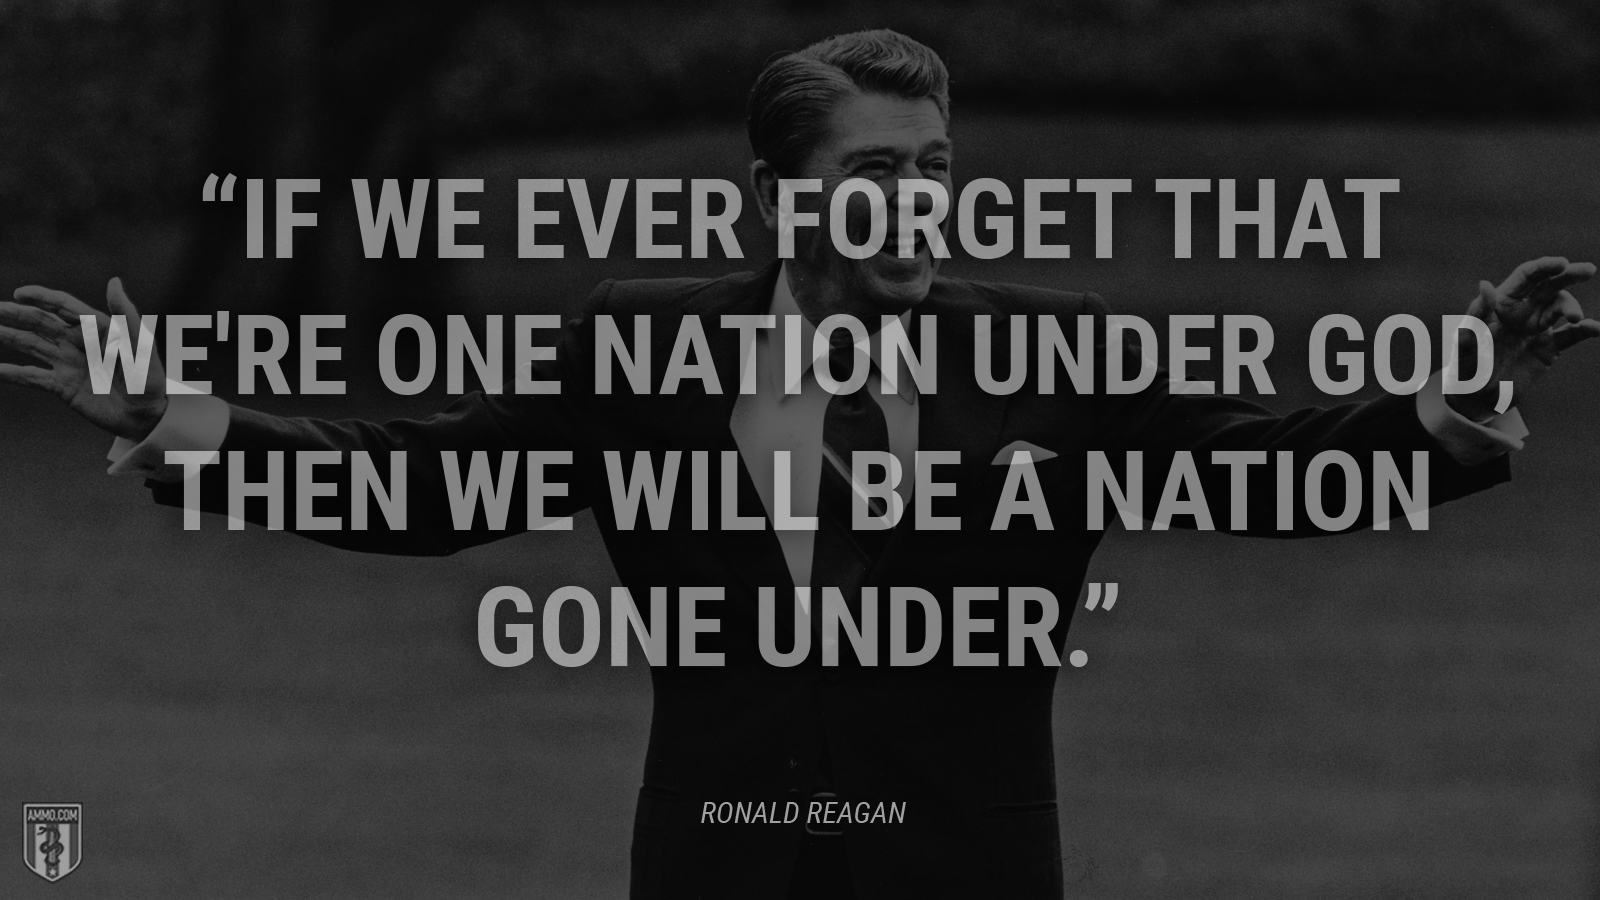 """If we ever forget that we're one nation under God, then we will be a nation gone under."" - Ronald Reagan"